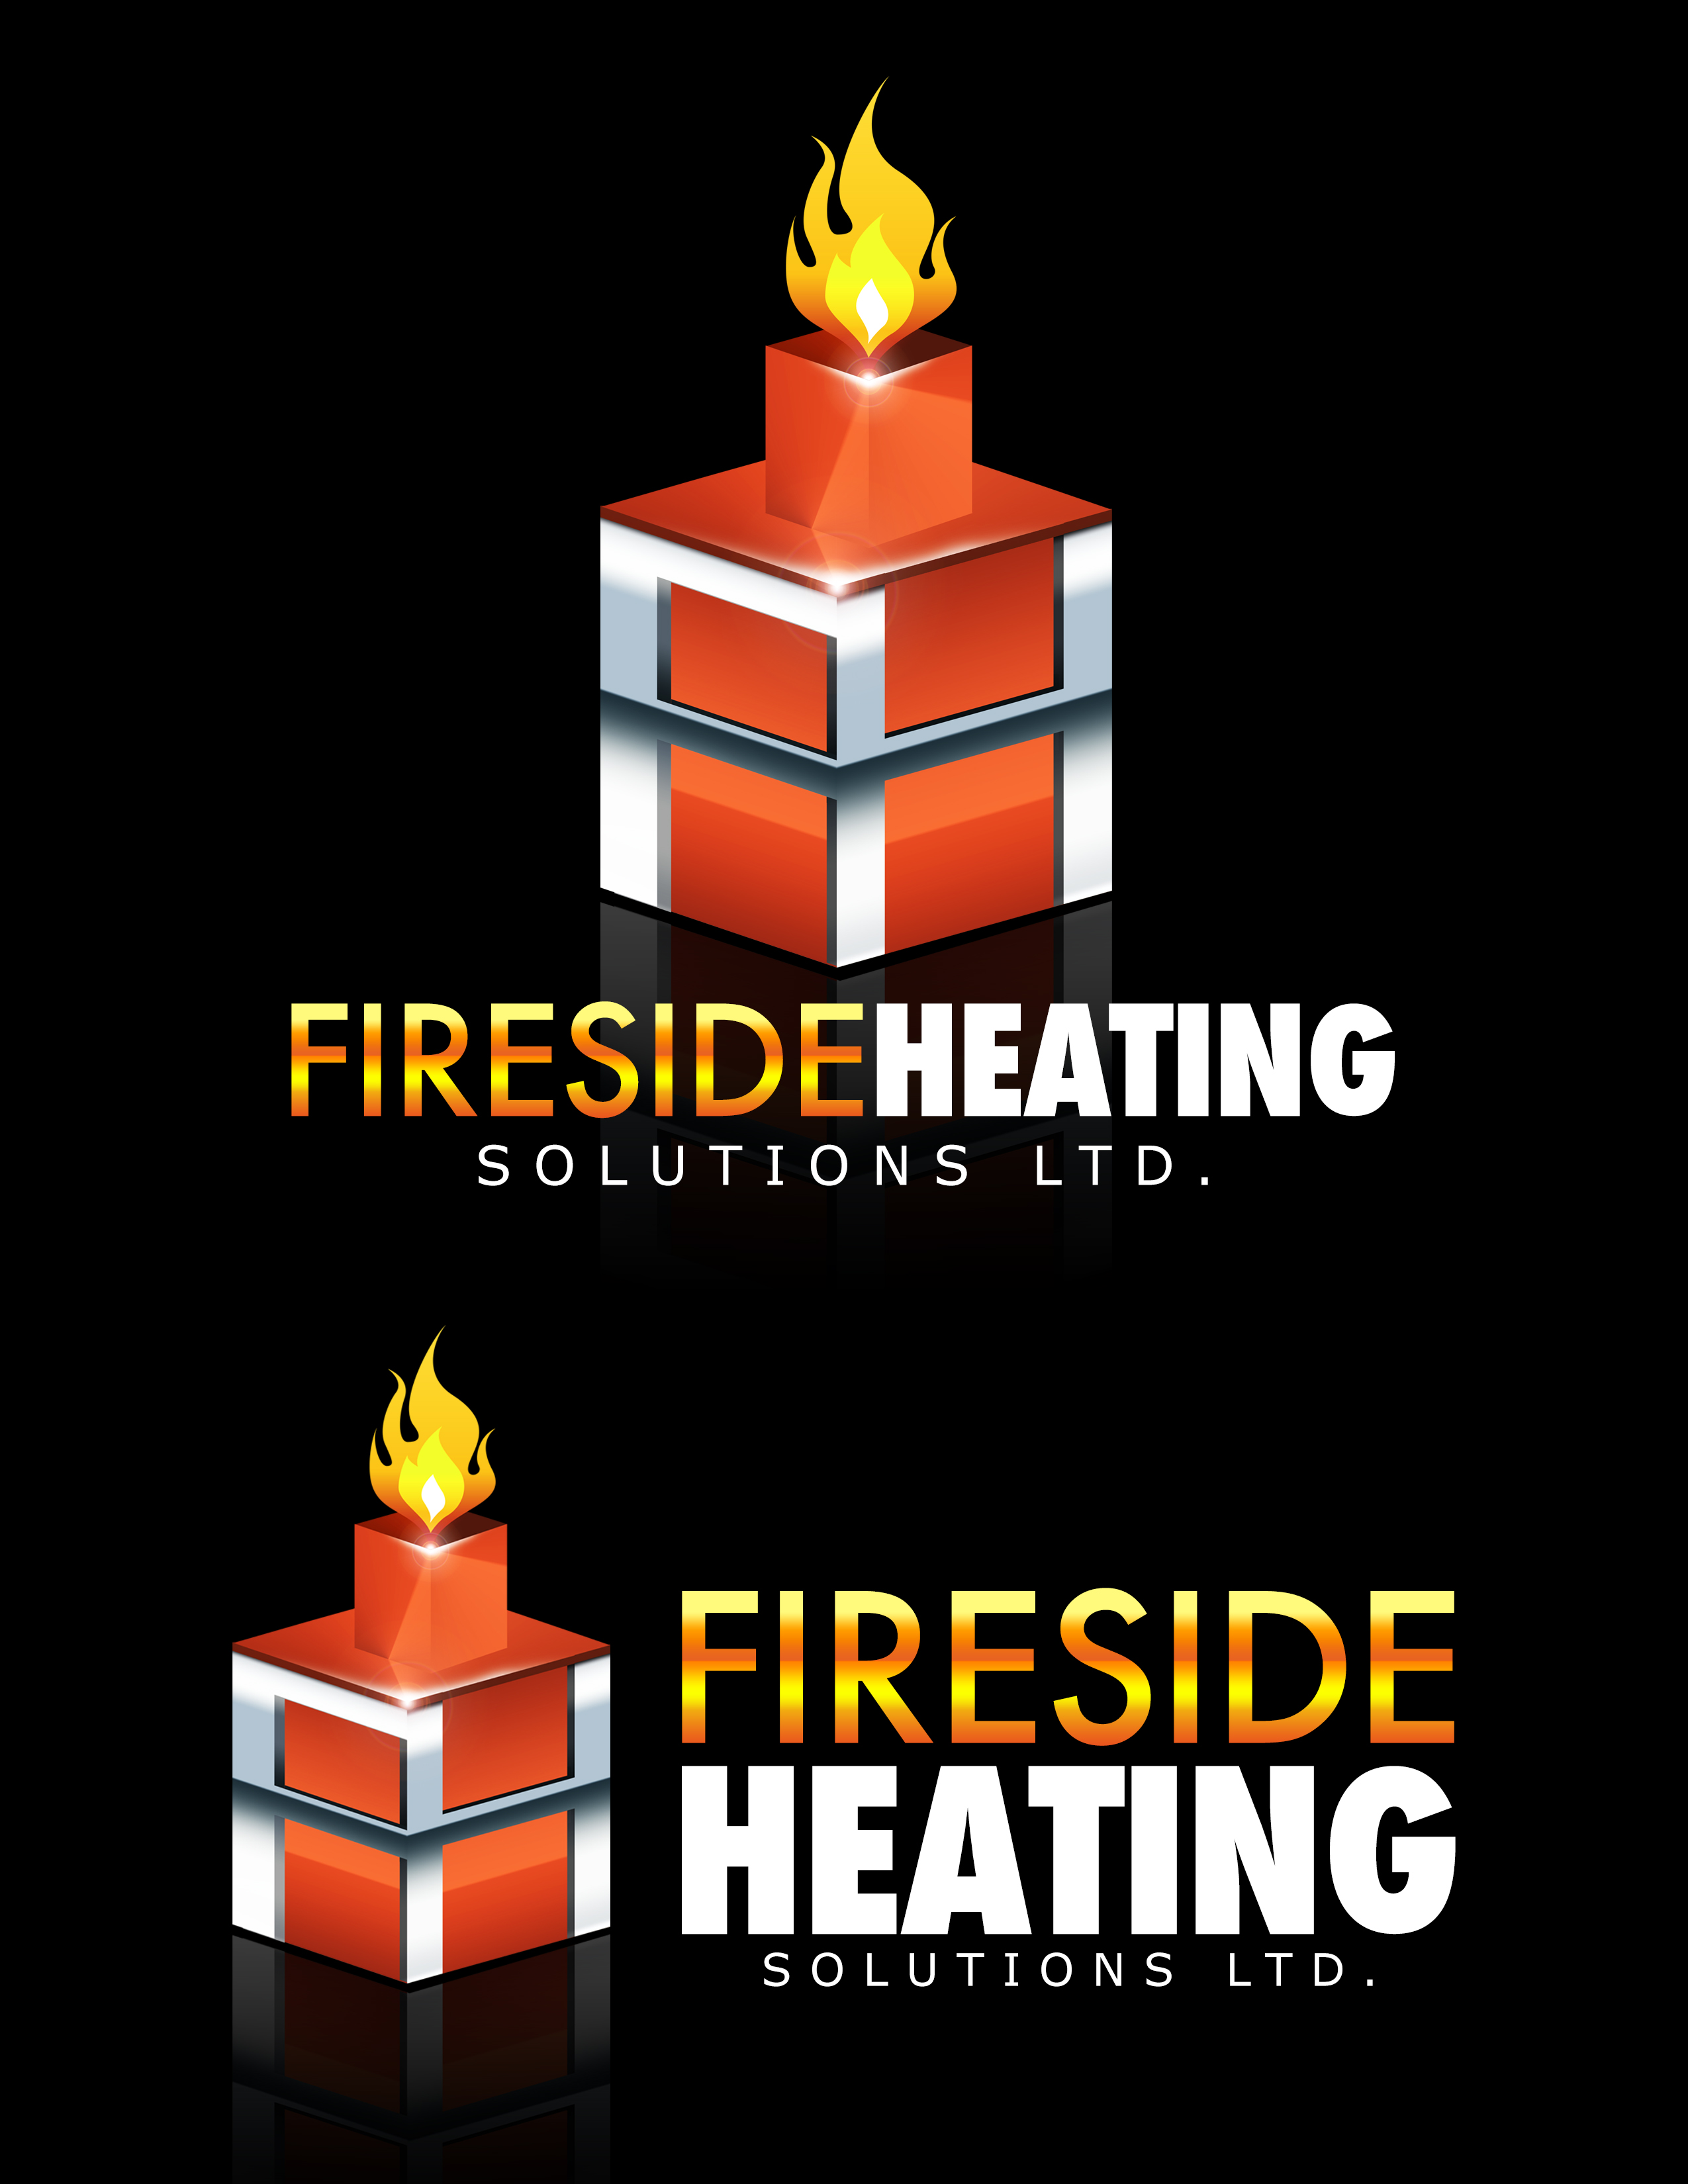 Logo Design by Andrew Velasco - Entry No. 80 in the Logo Design Contest Creative Logo Design for Fireside Heating Solutions Ltd..